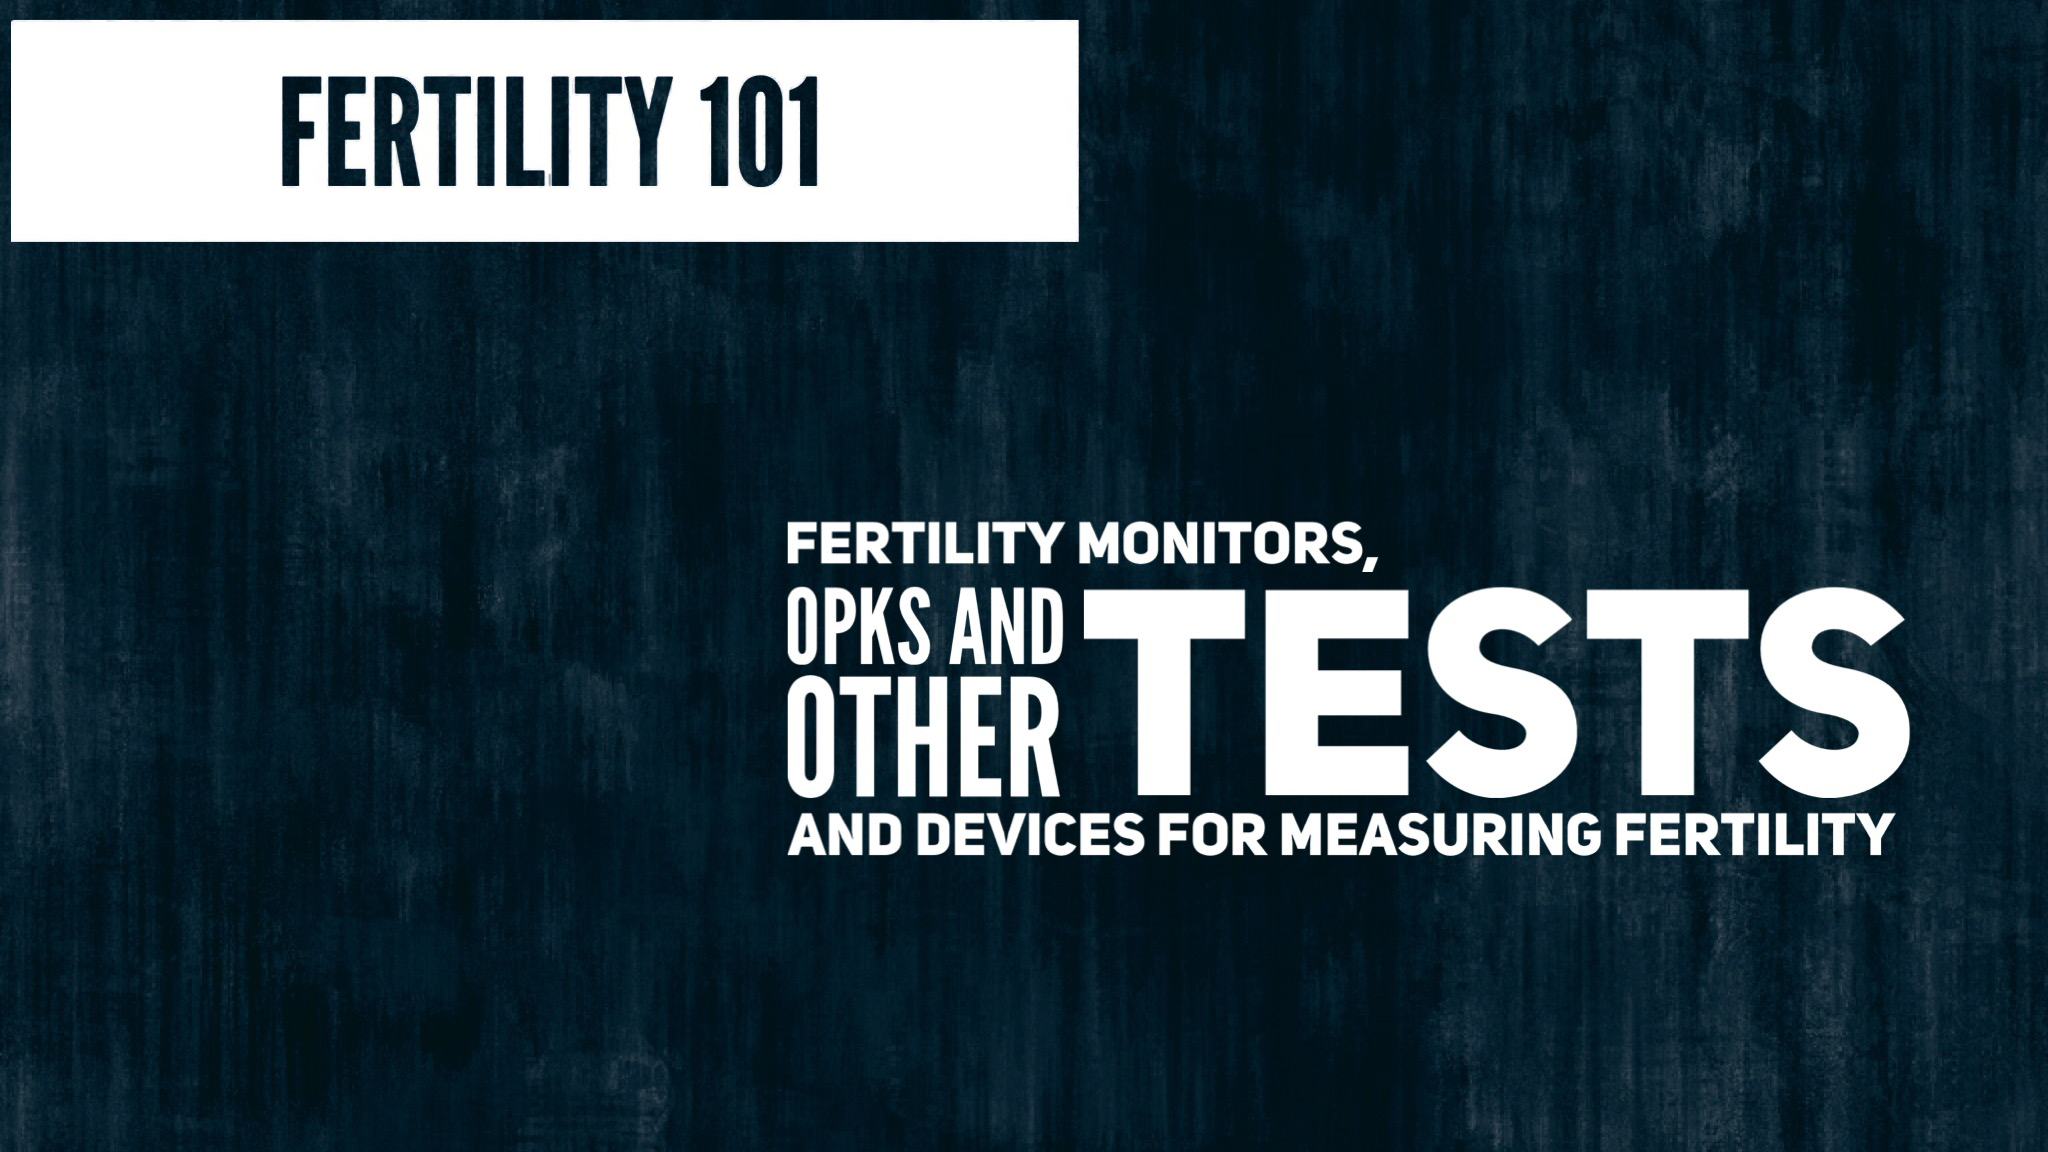 Lesson 12 - Fertility Monitors, OPKs, and Other Tests and